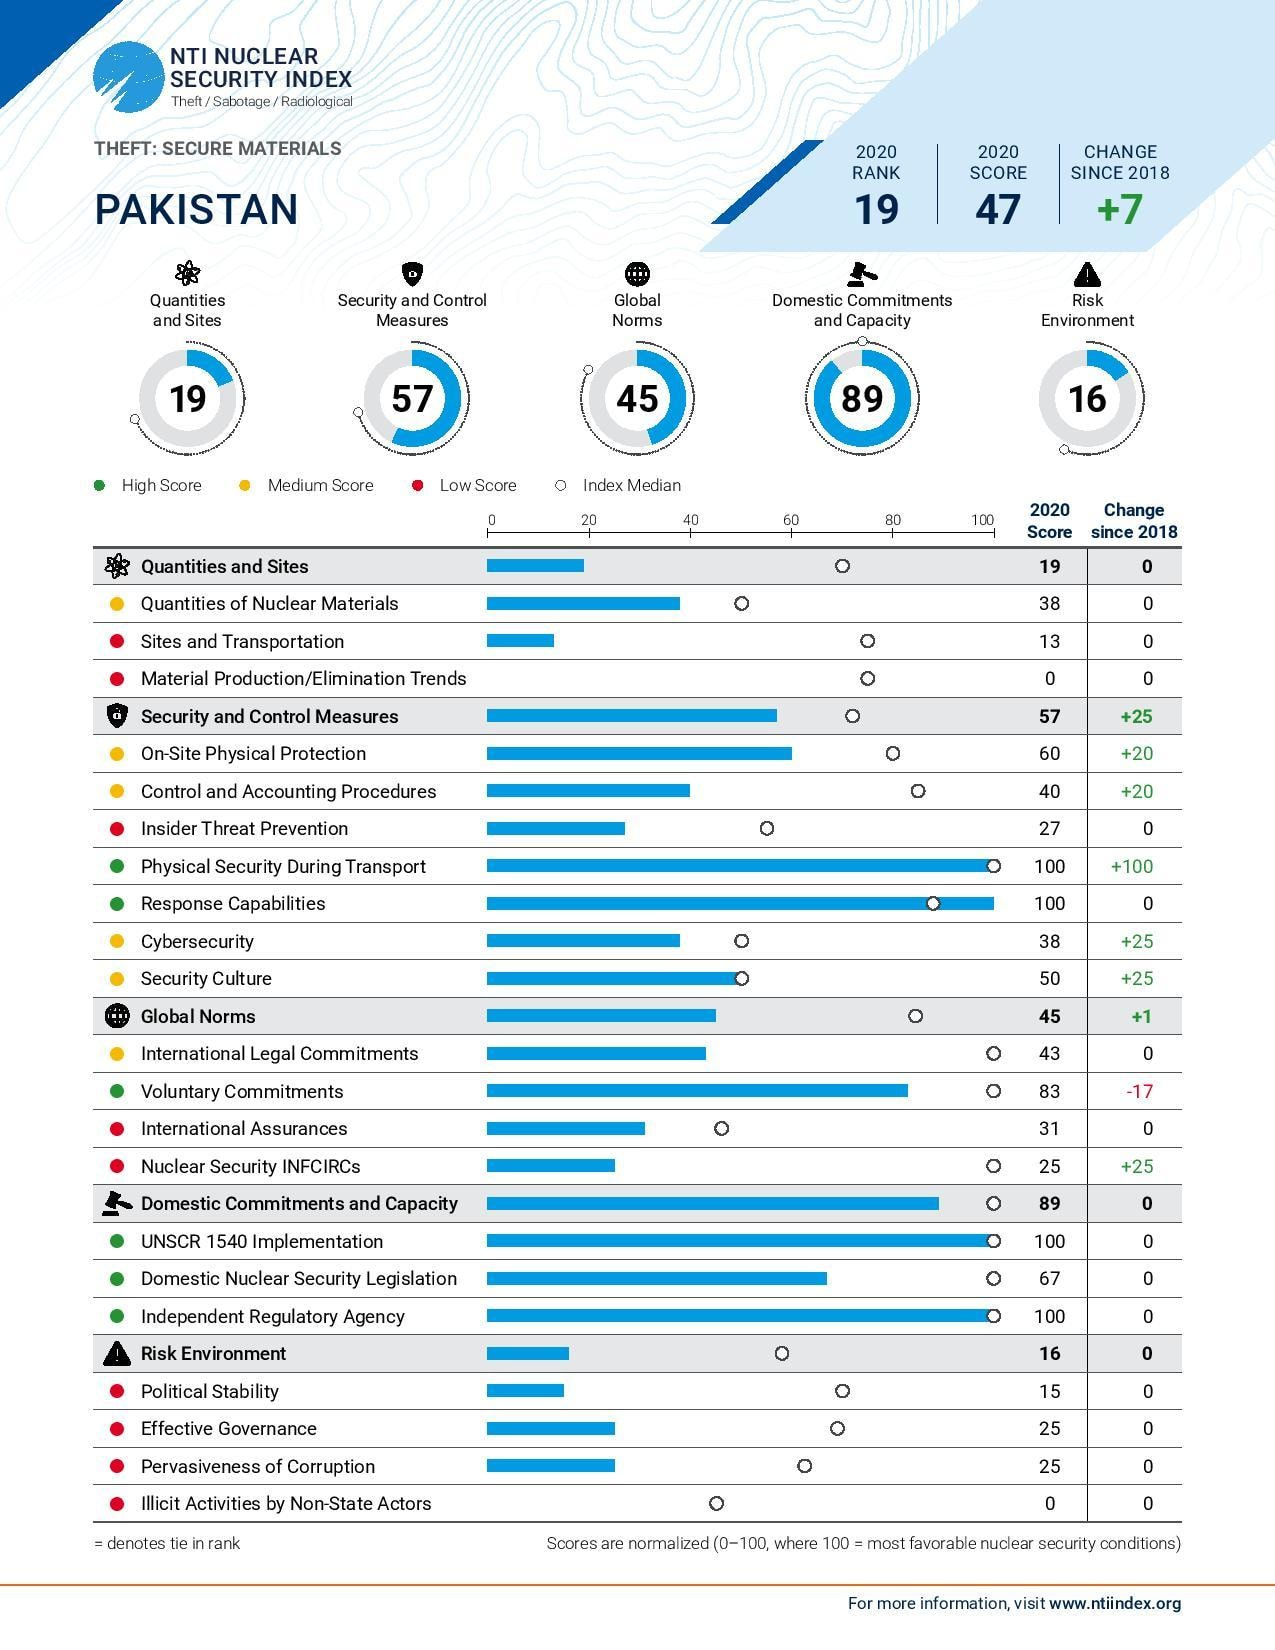 A screengrab of one of the pages of the report on Pakistan.